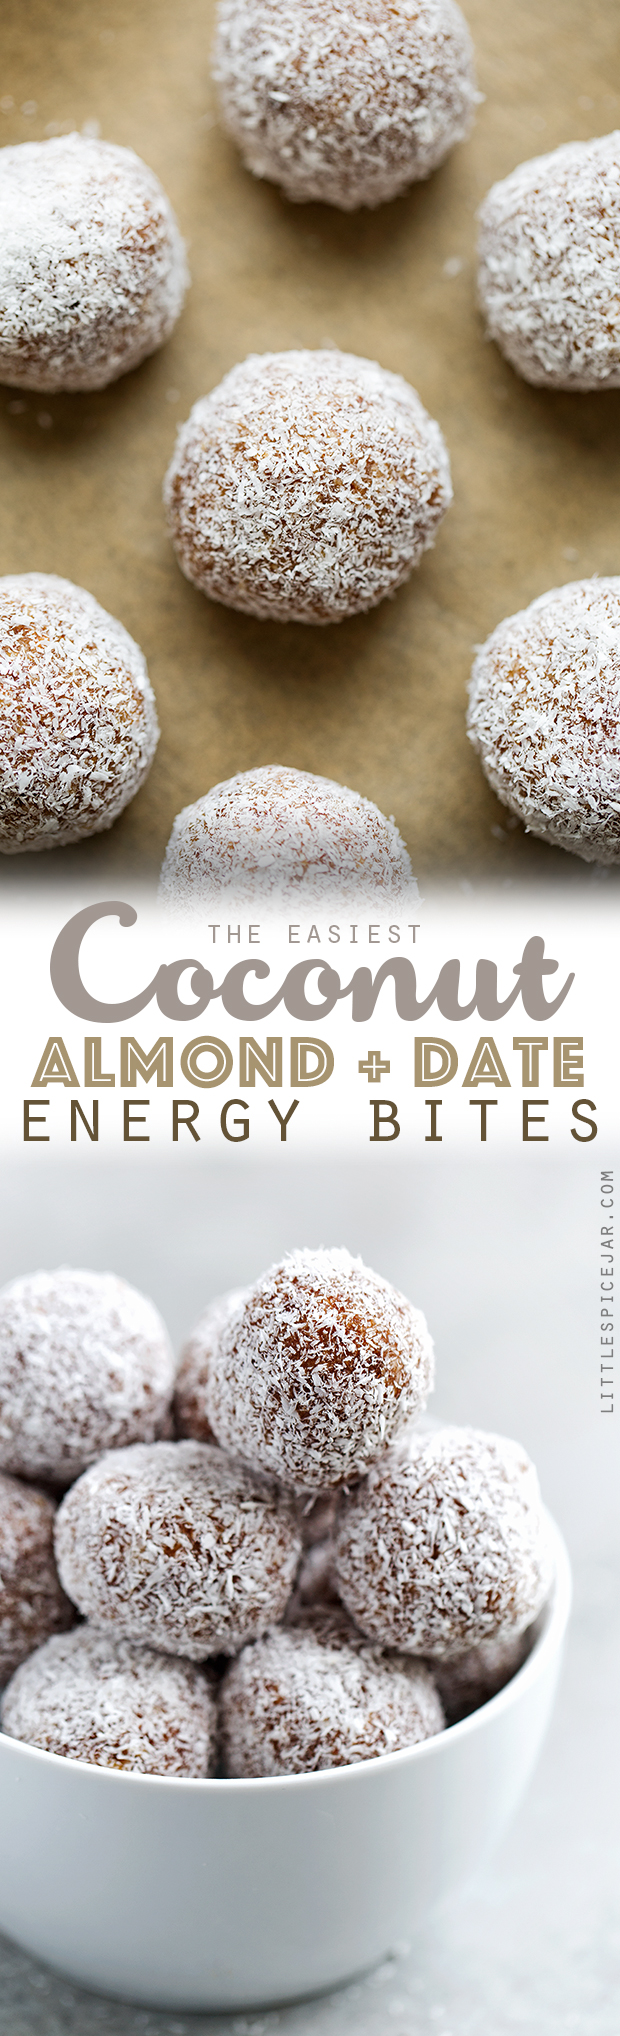 Coconut Almond Energy Bites - These energy bites are made with just 5 simple ingredients. They're crunchy, salty, and sweet and are perfect for a mid-day snack! #energybites #energyballs #refinedsugarfree | Littlespicejar.com